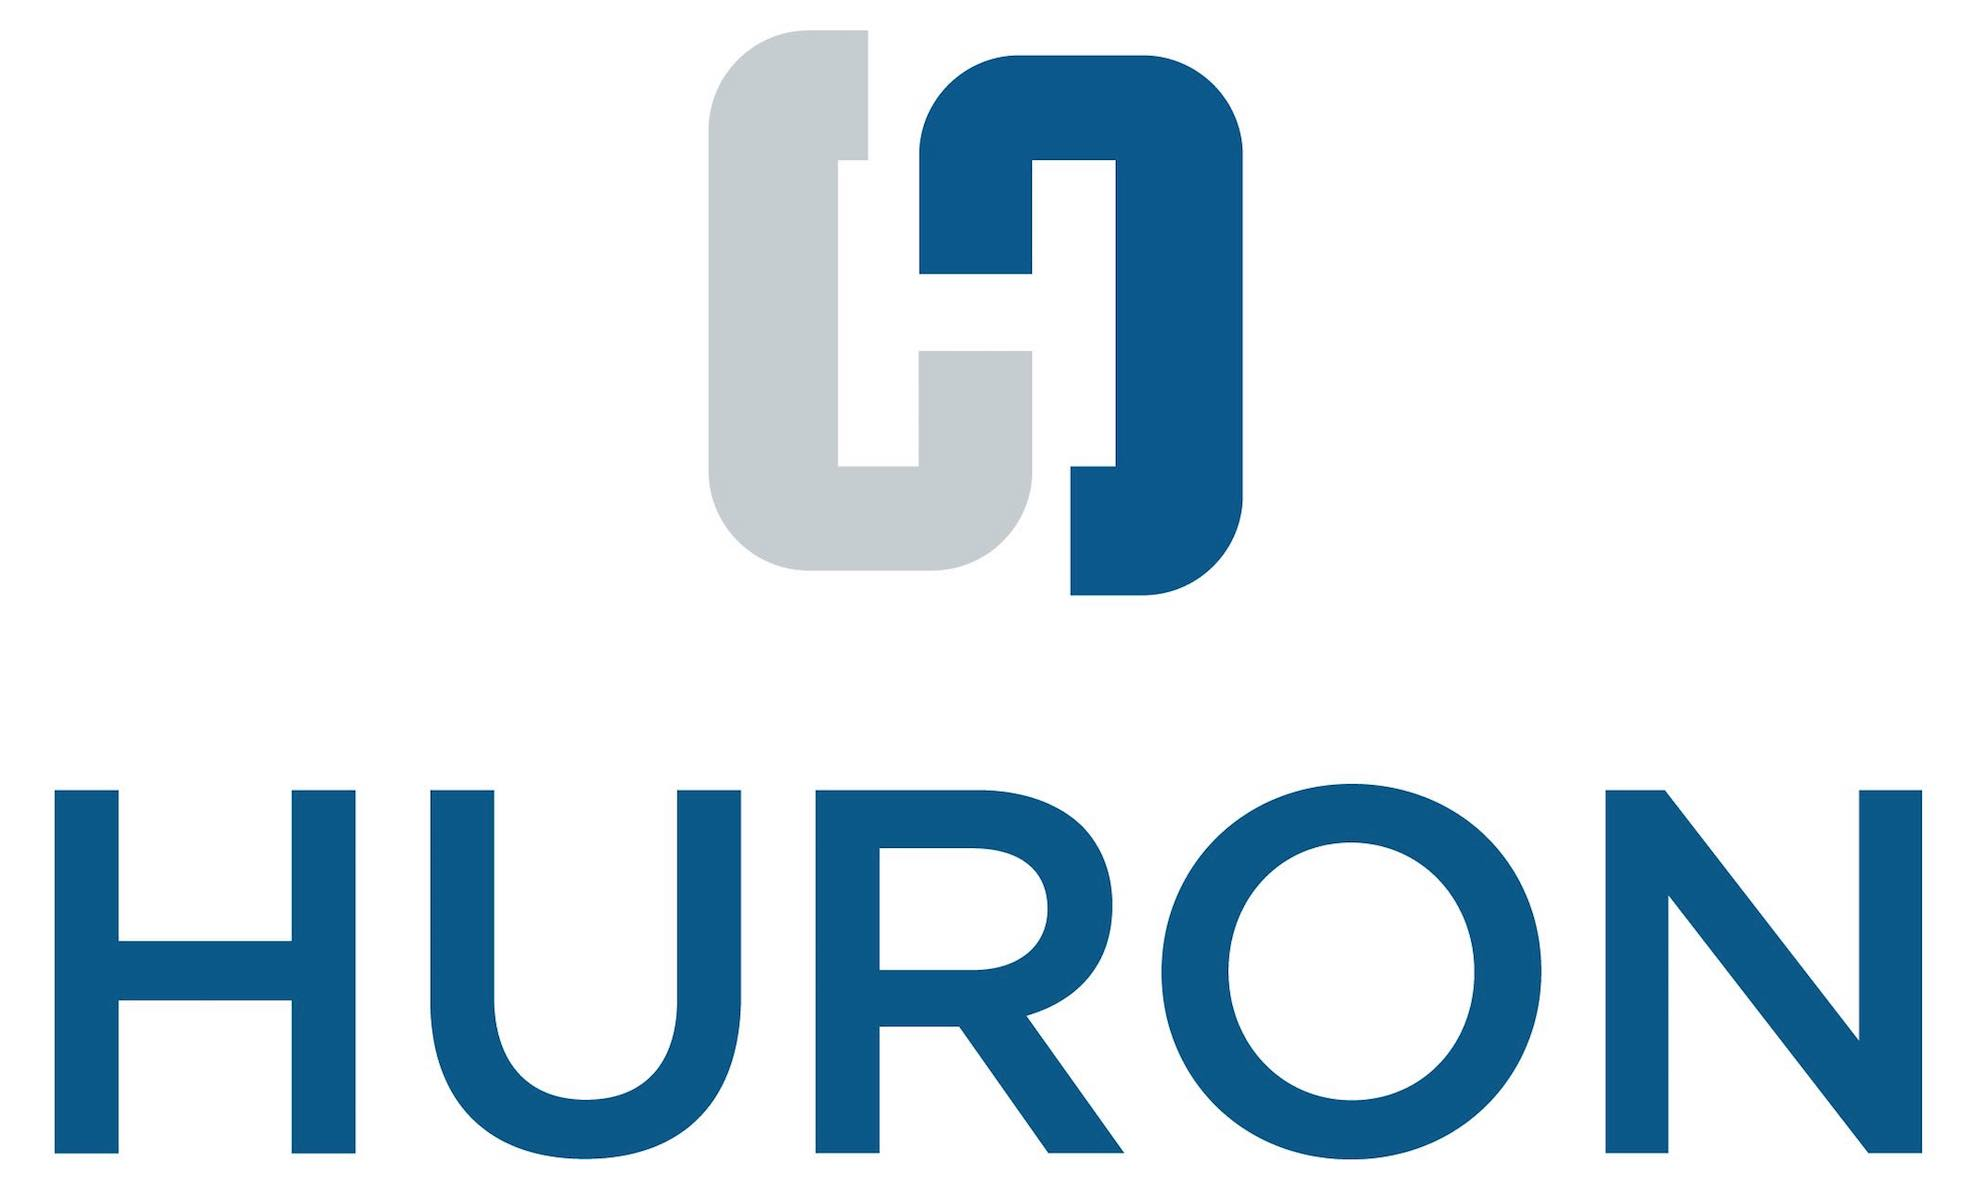 Huron Consulting Group rebrands as Huron, launches new site, logo